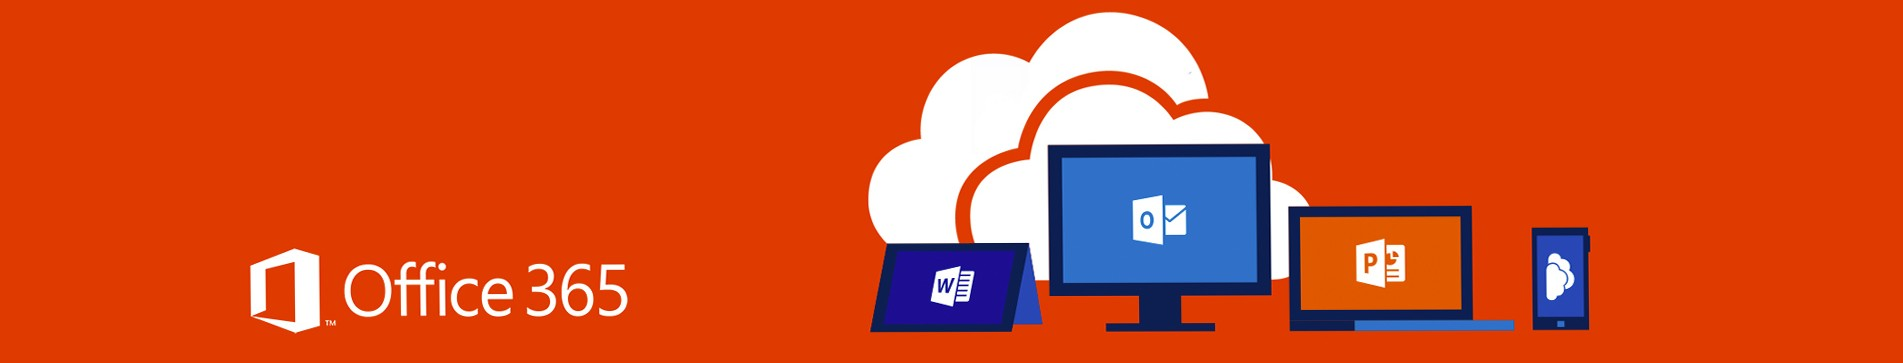 Course Image Office 365